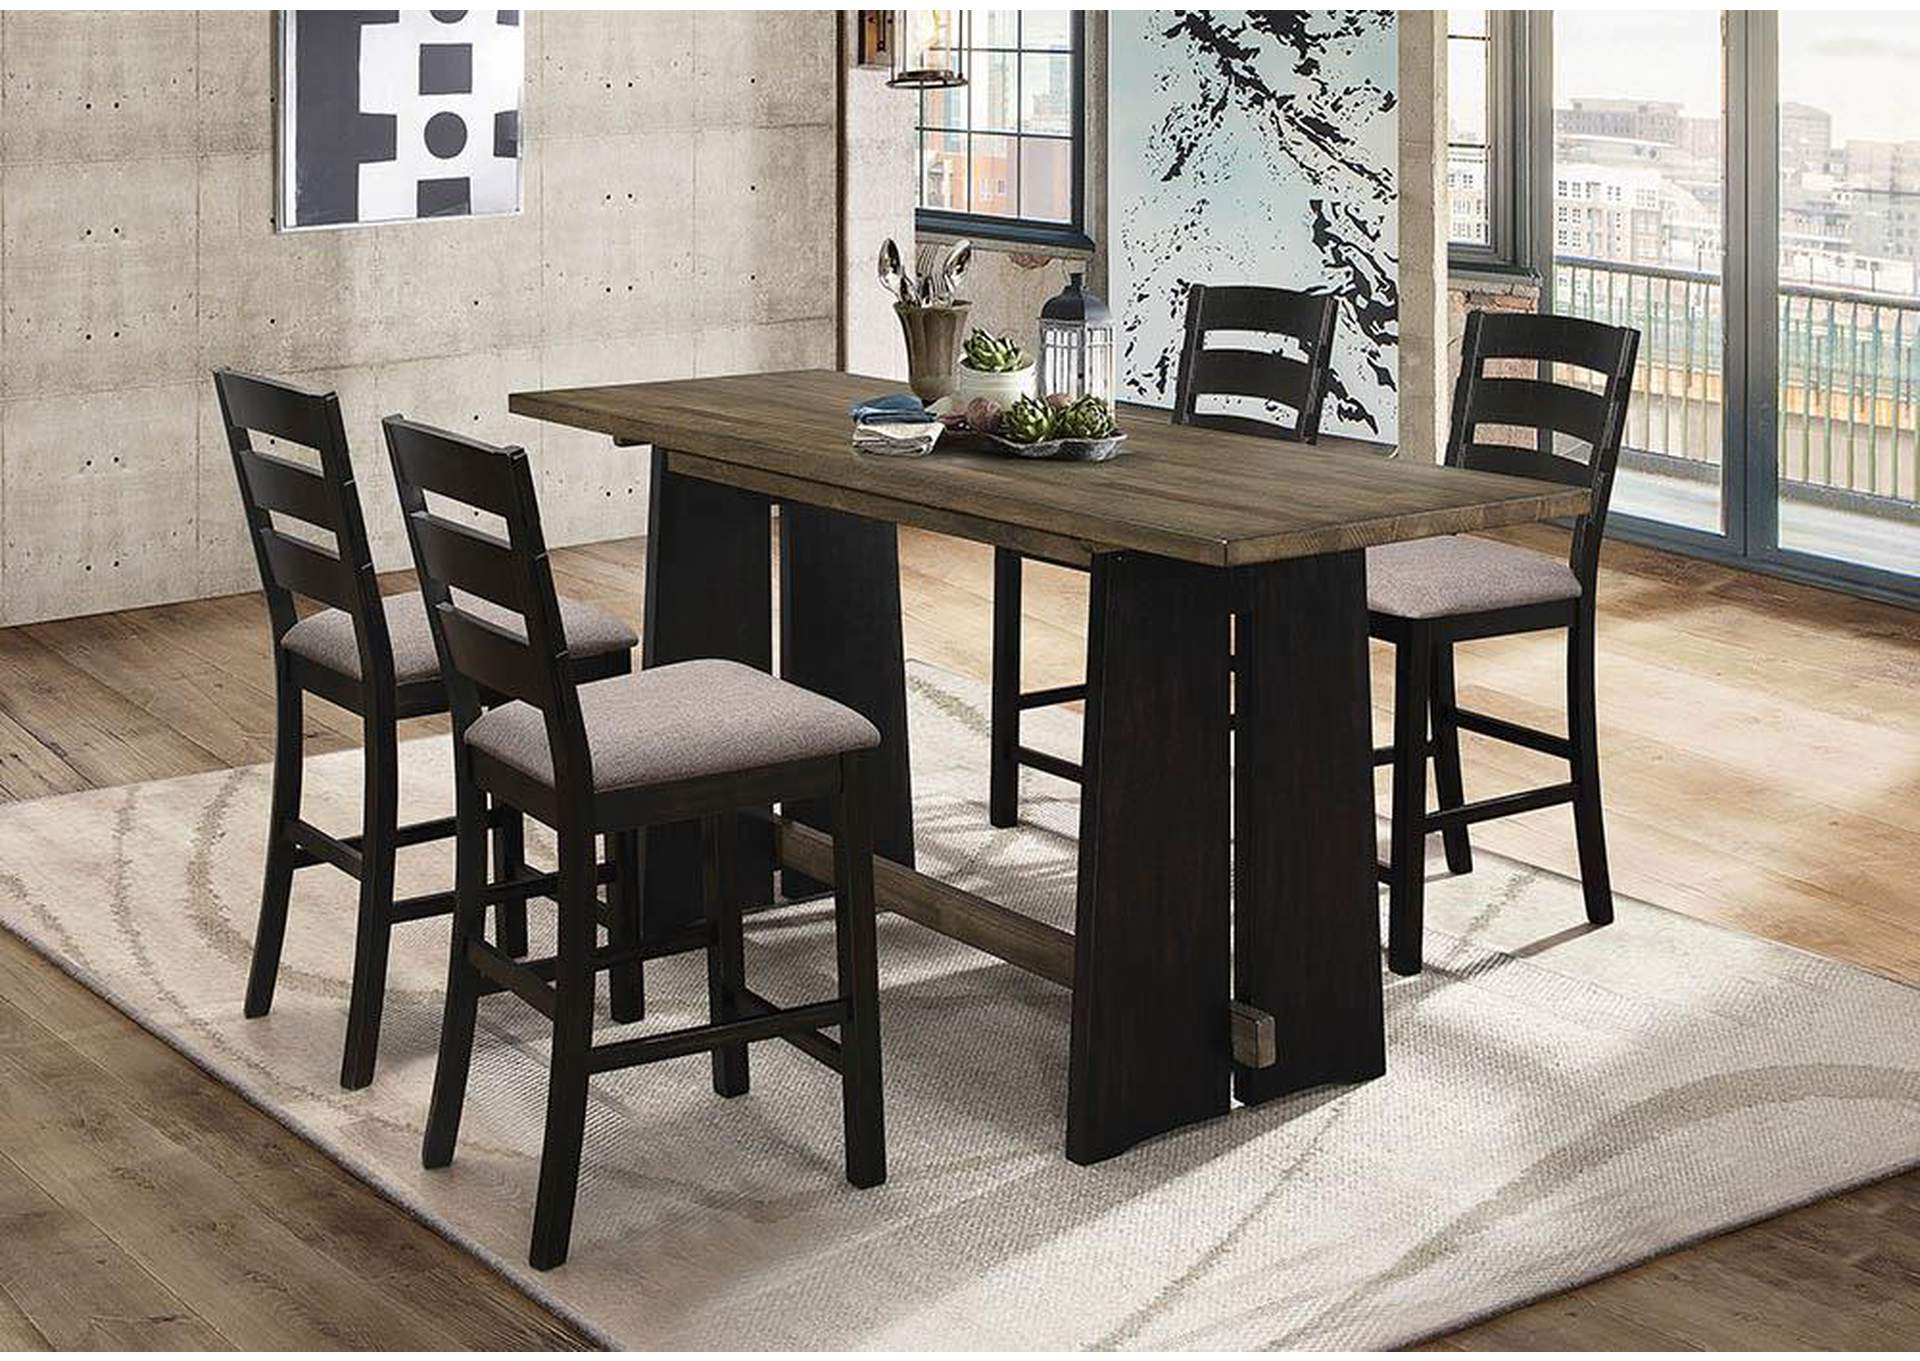 Oakley Khaki and Black Counter Table,Coaster Furniture